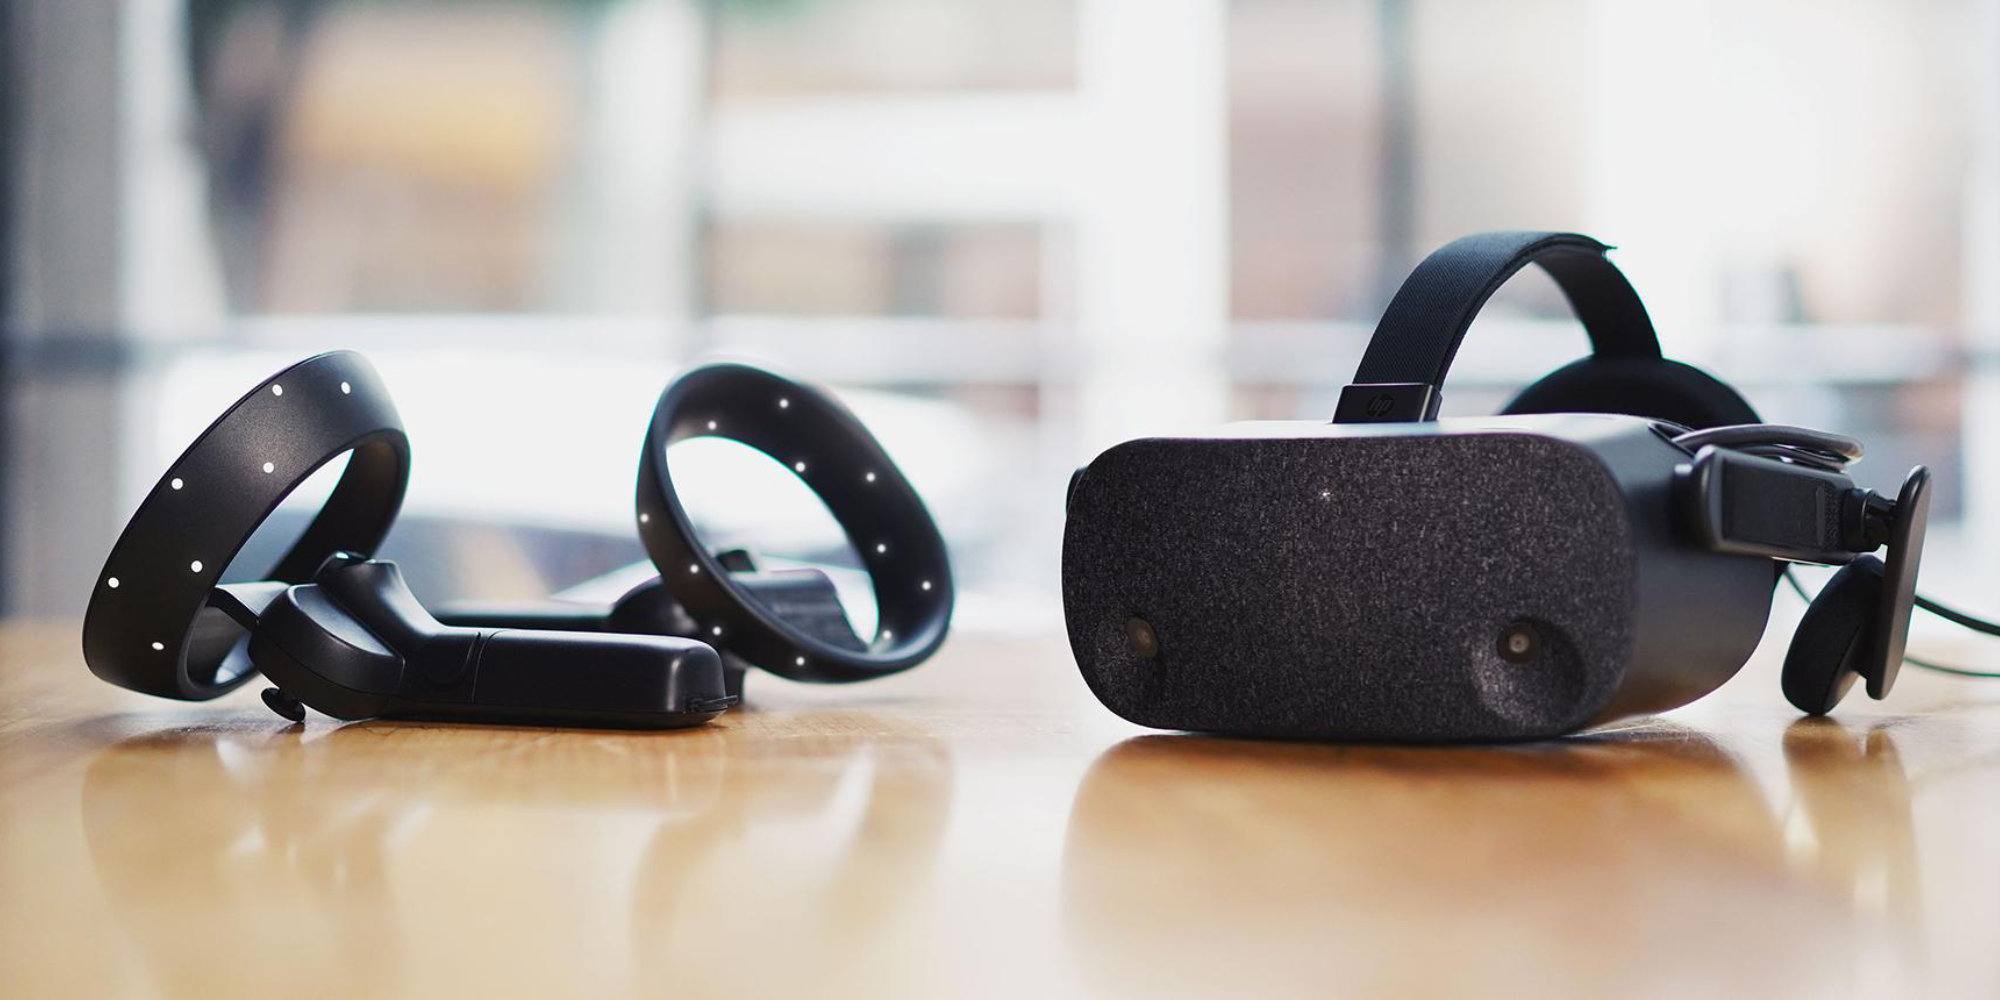 HP unveils the all-new Reverb VR Headset w/ incredible clarity, wide field of view, more